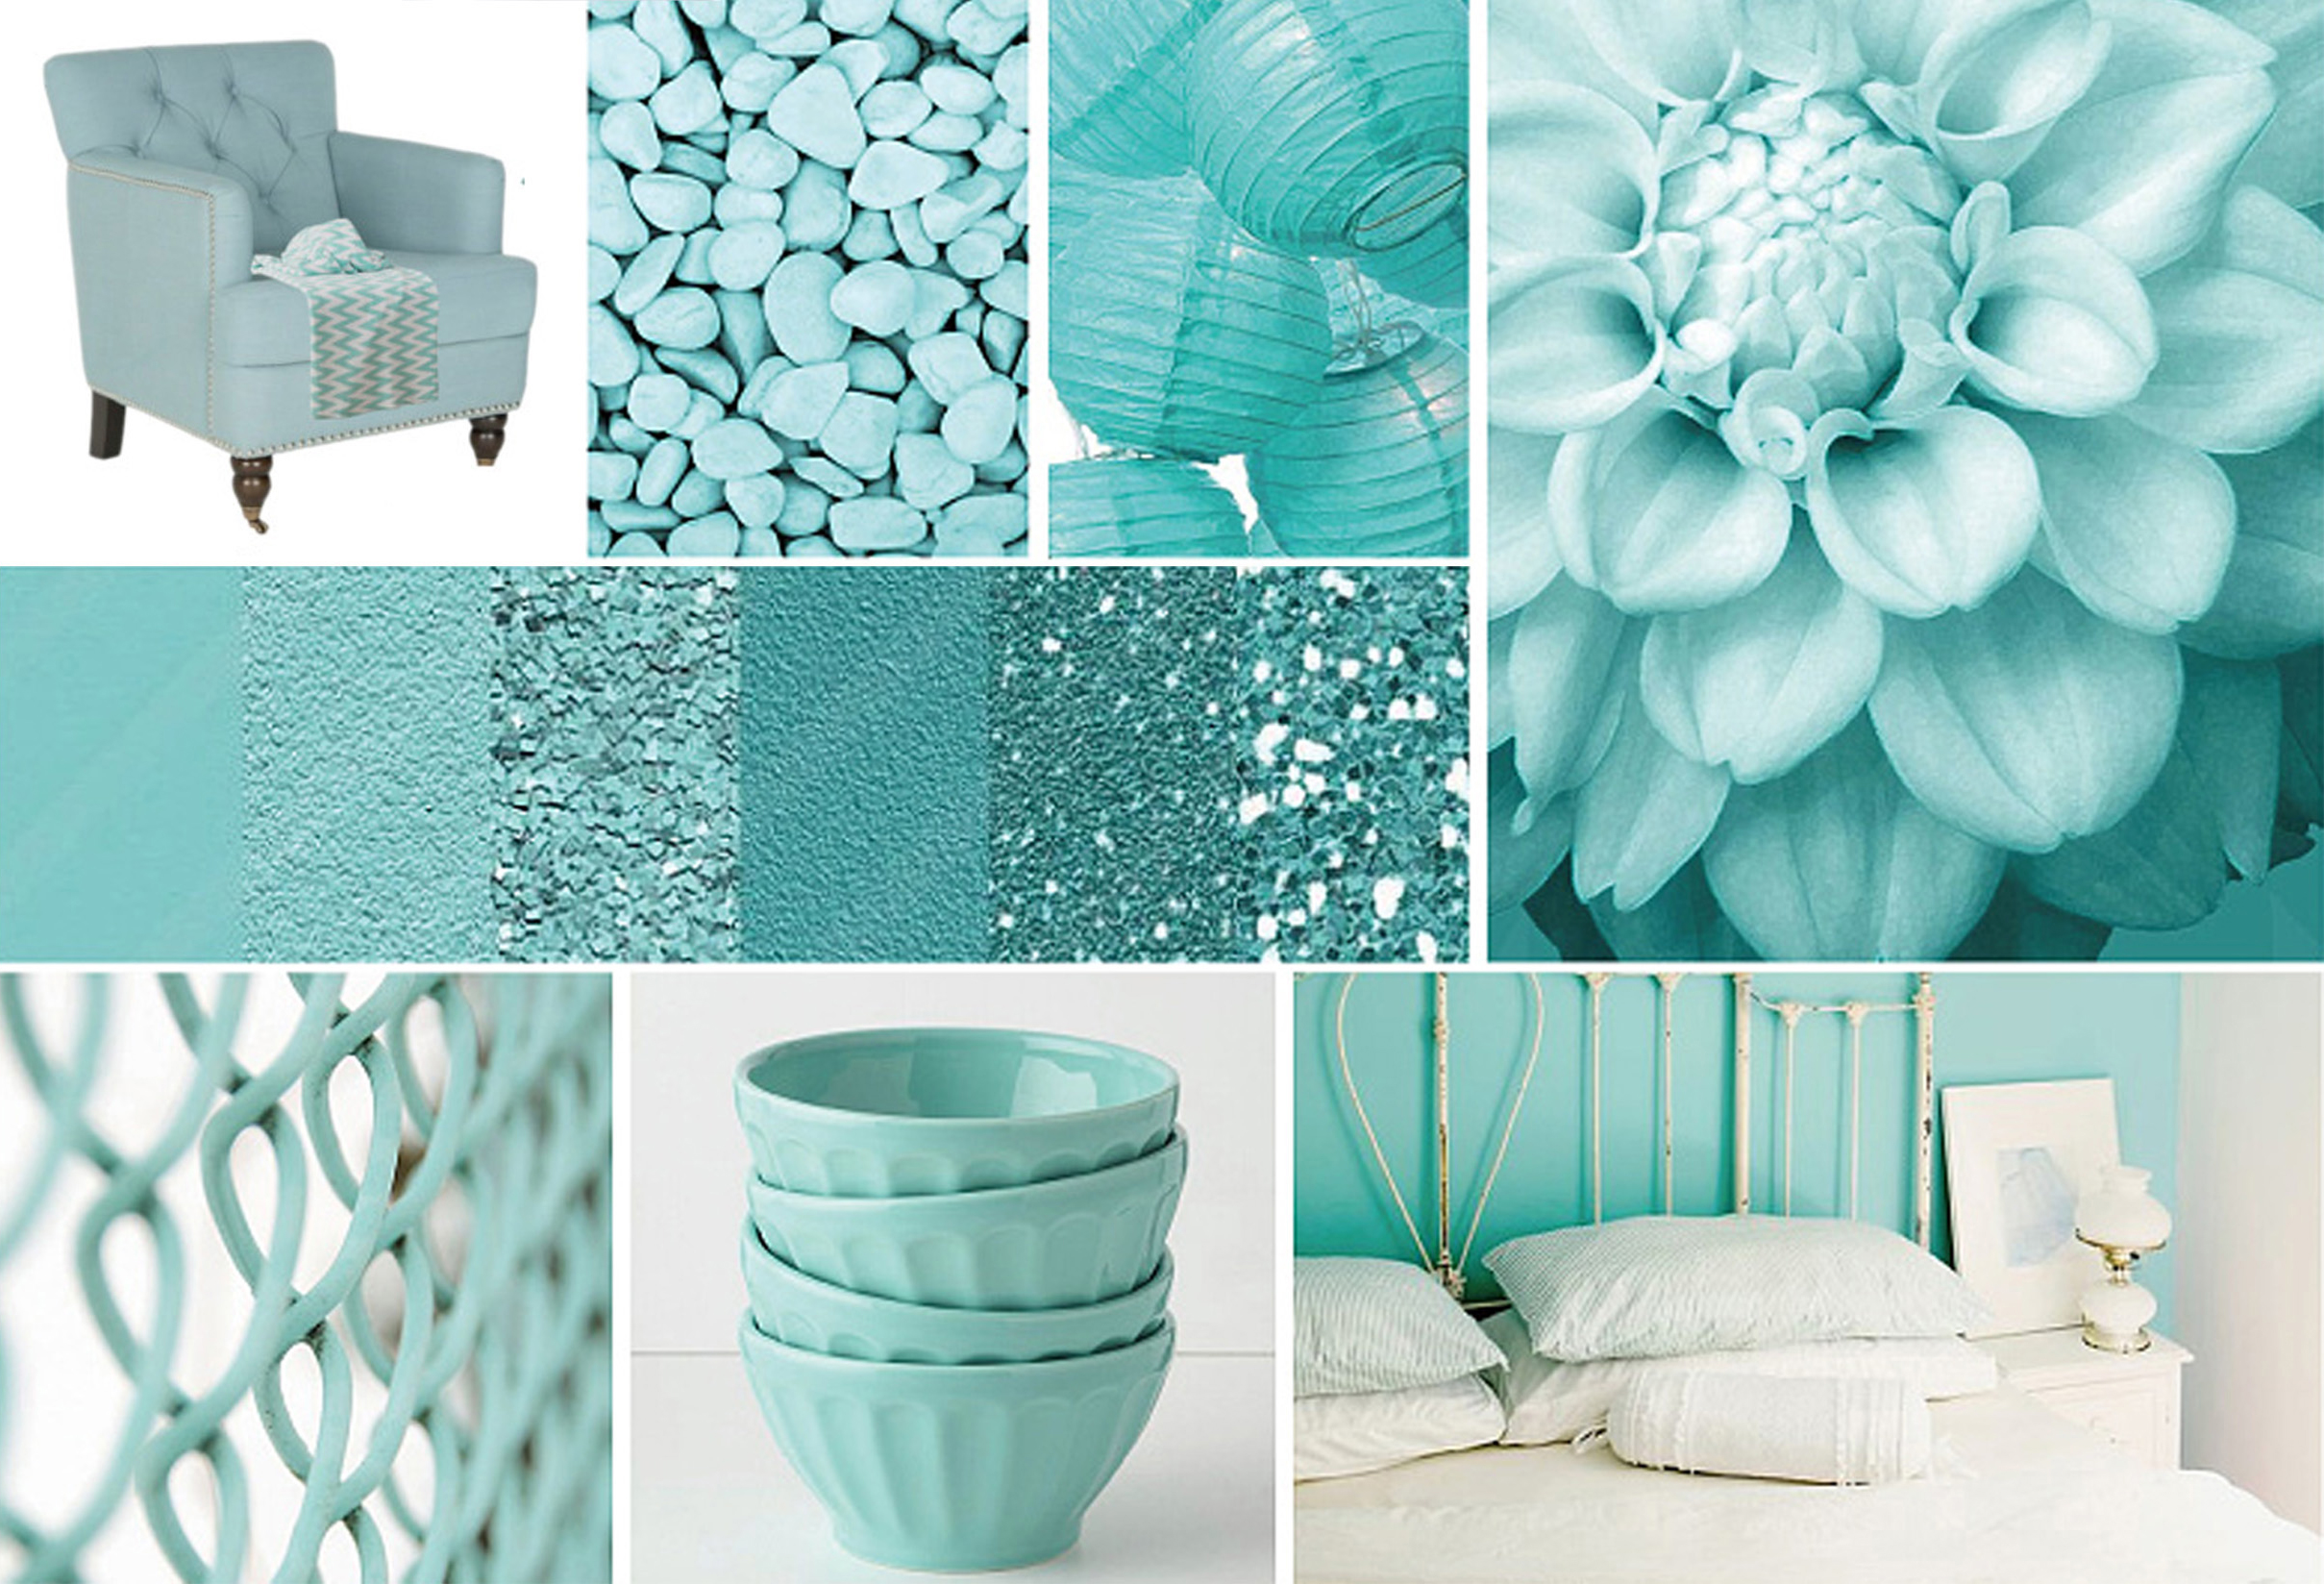 pantone color of the year 2003 aqua sky